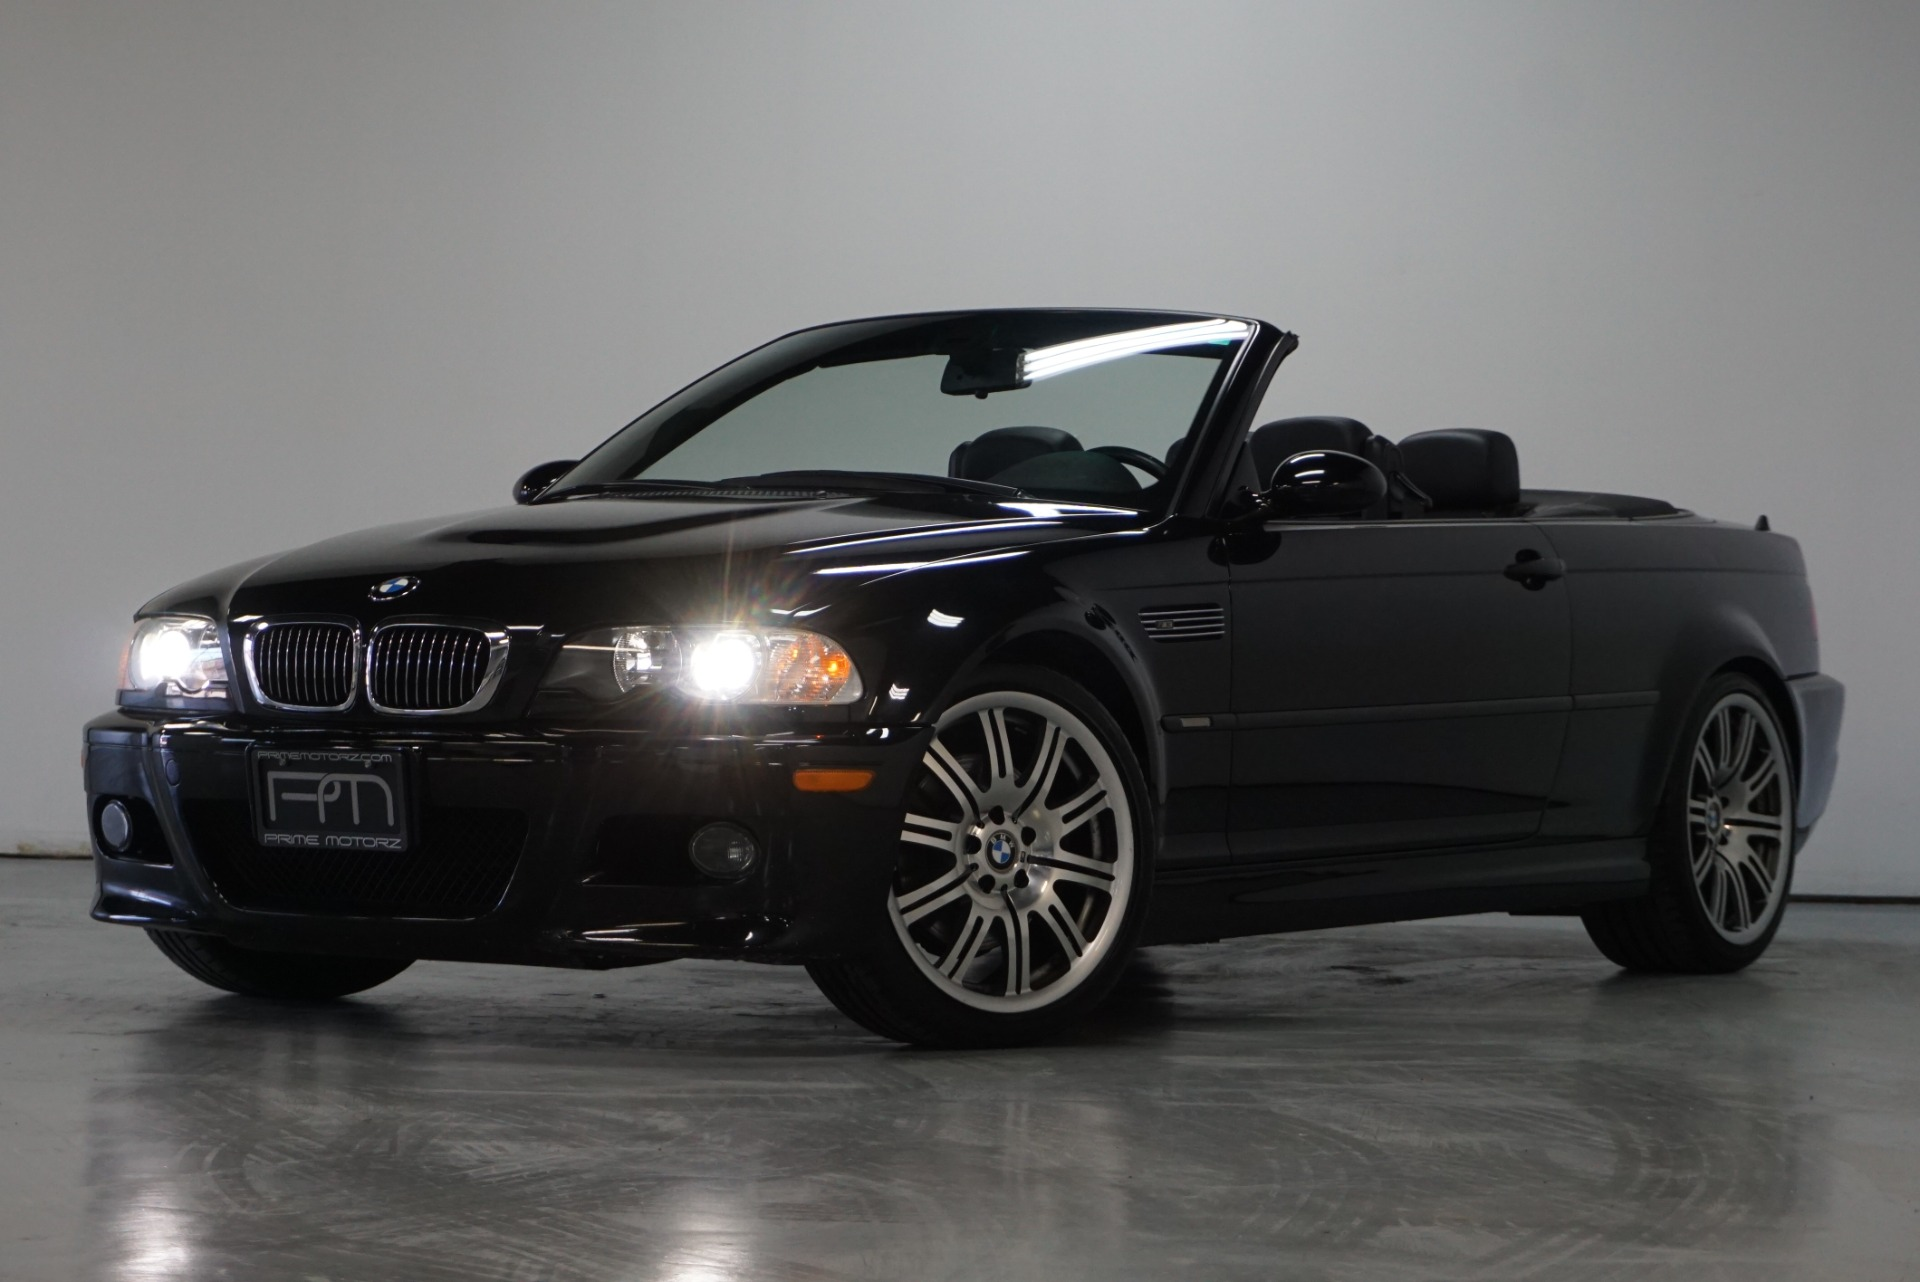 Used 2005 Jet Black Bmw M3 Convertible 3 Series For Sale Sold Prime Motorz Stock 2713